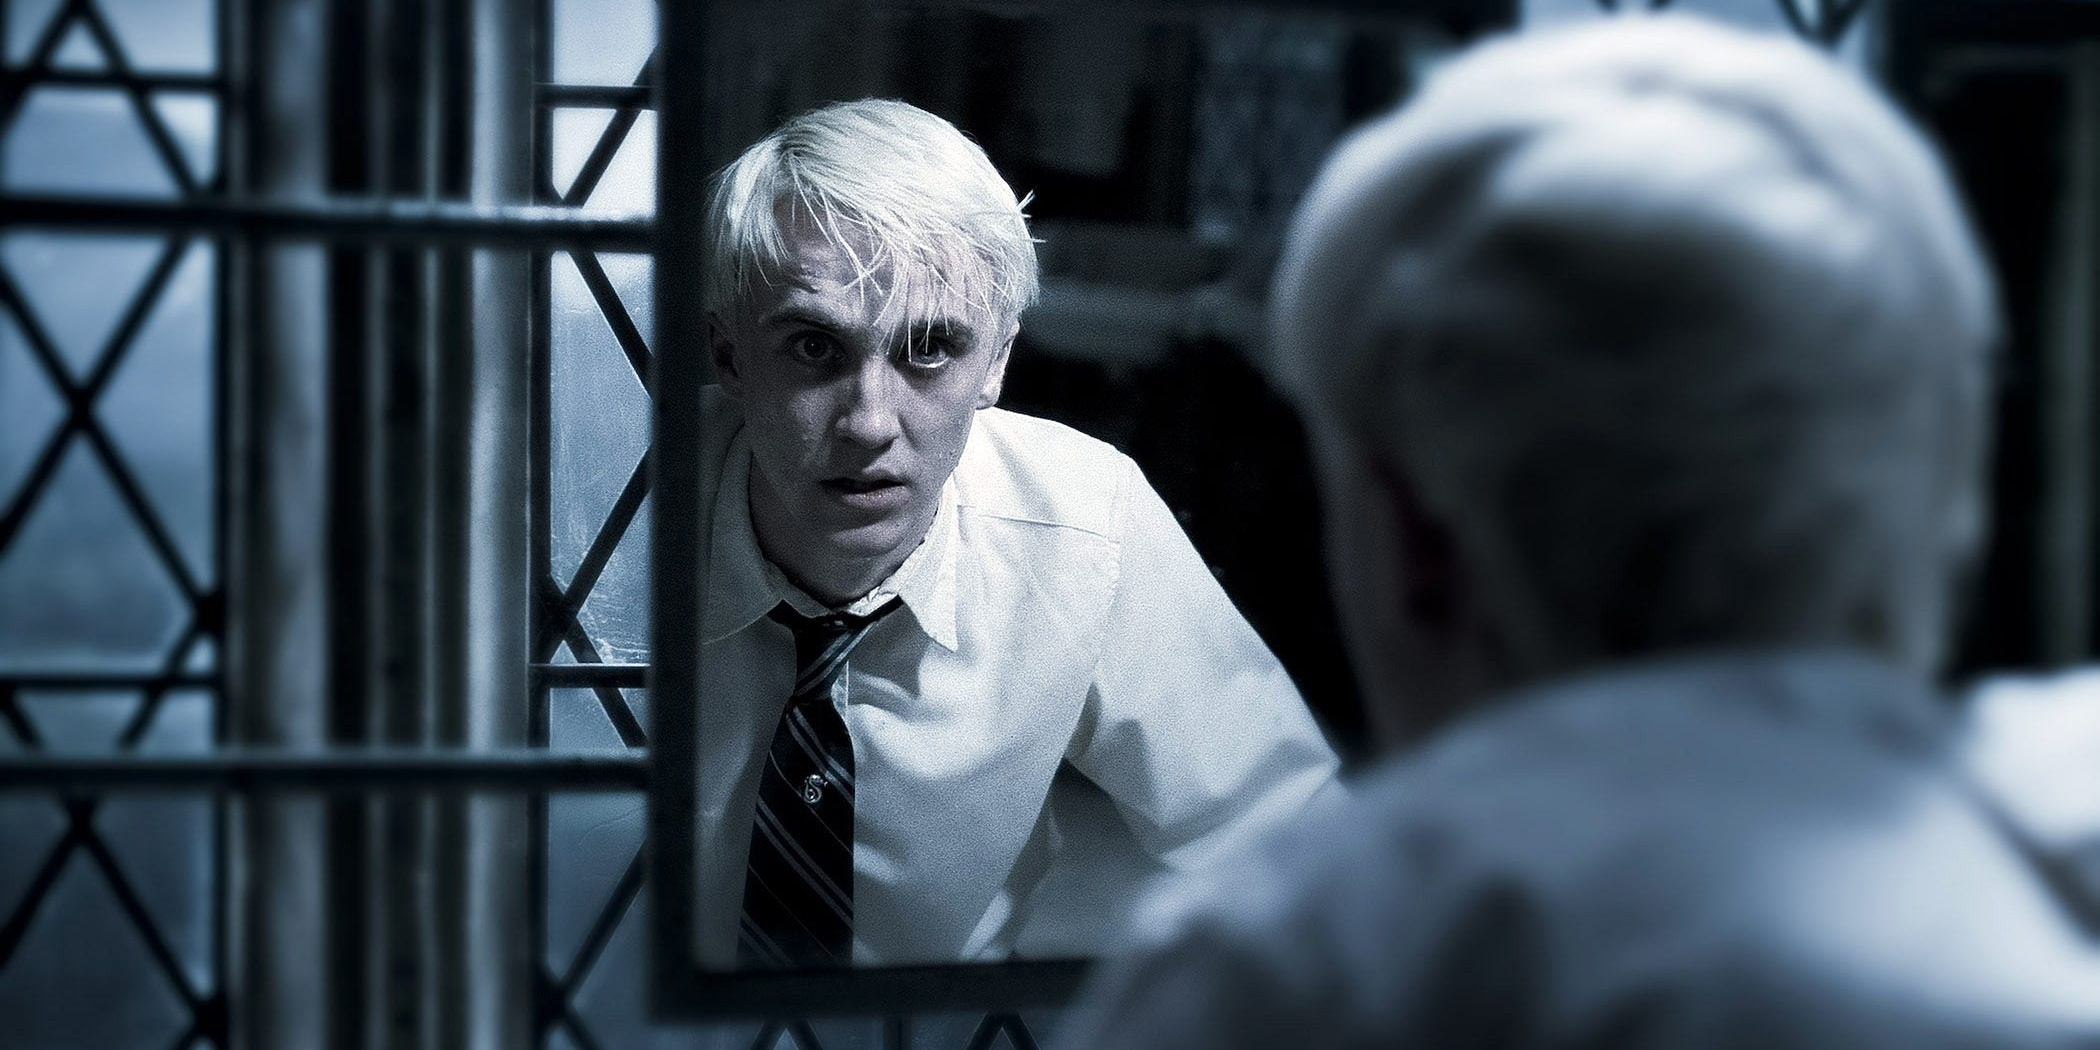 8. Harry Potter Vs. Draco Malfoy - Harry Potter And The Half-Blood Prince Cropped